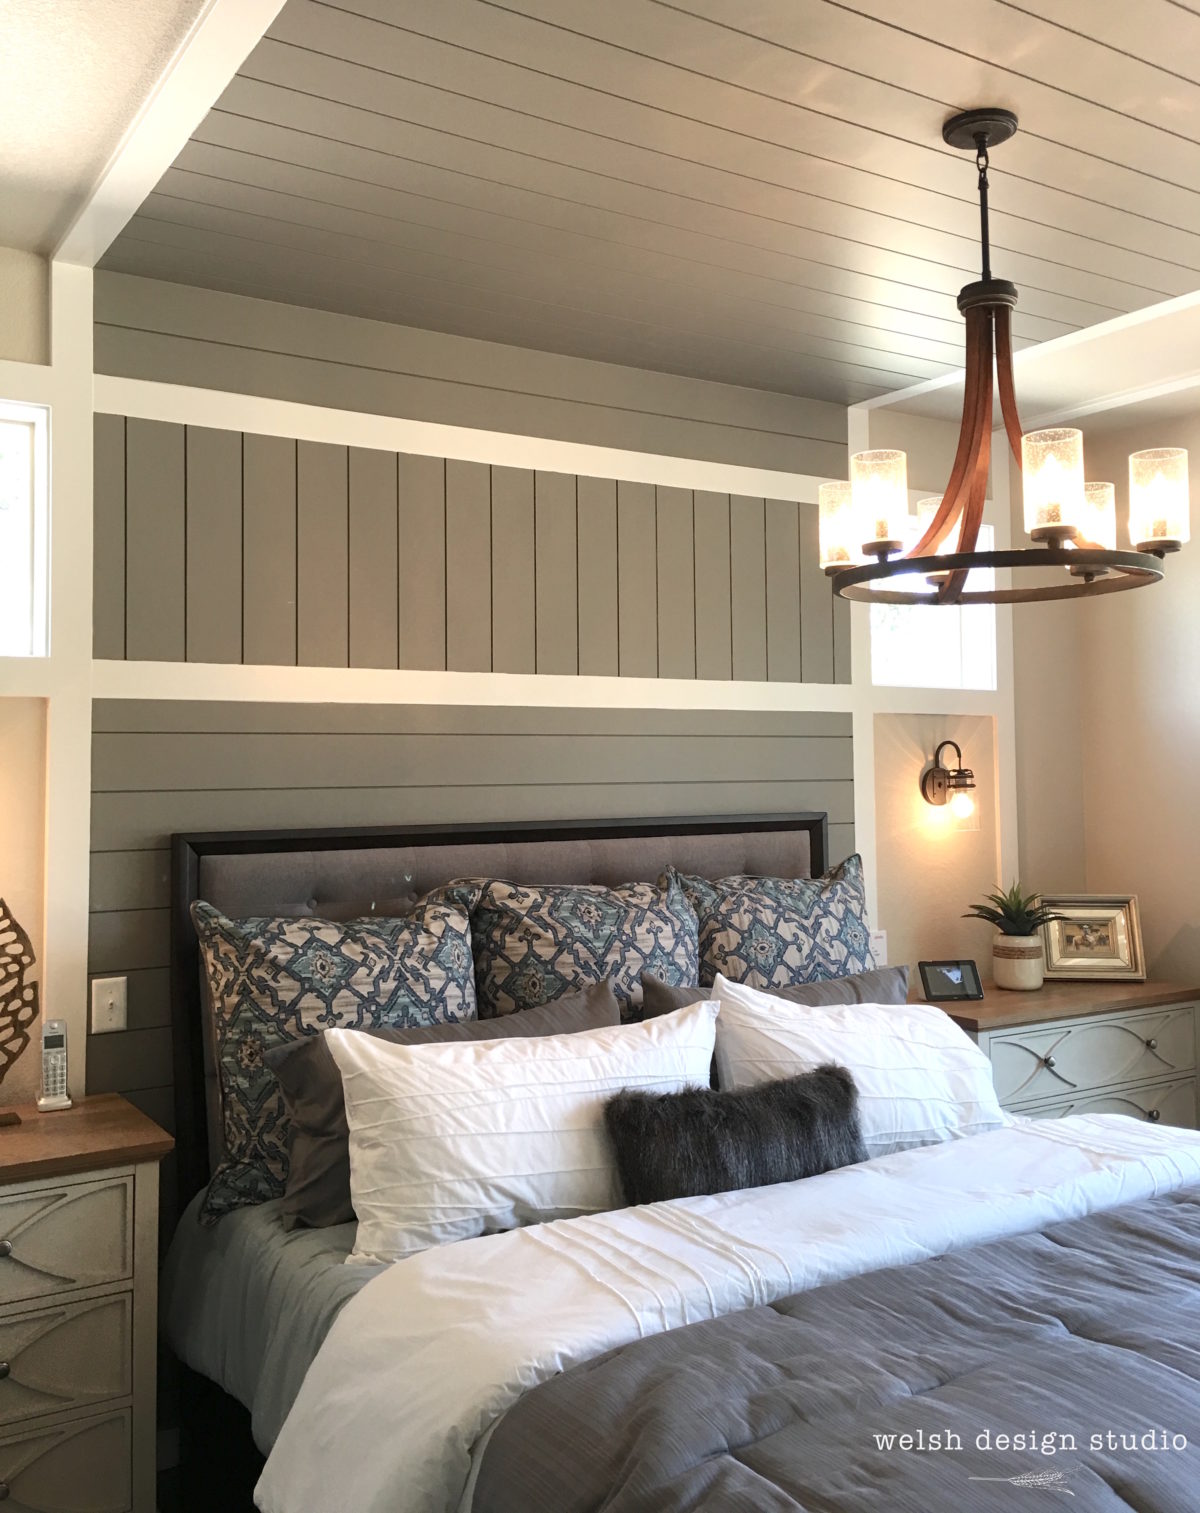 painted shiplap behind bed